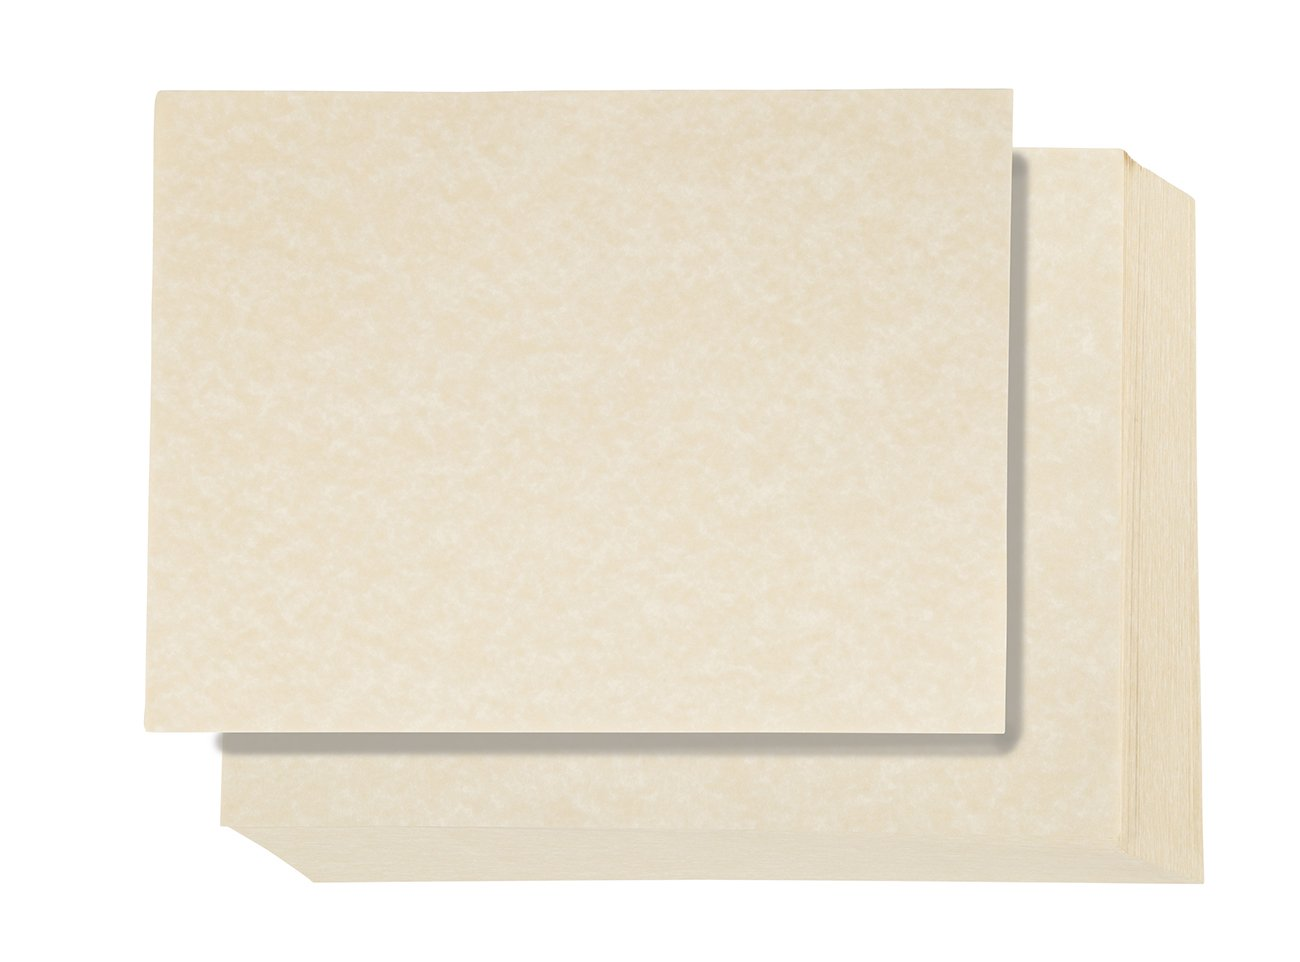 Pack of 96 Aged Parchment Paper - Parchment Paper with Parchtone Paper - Vintage Scrapbook Paper, Cream, 8.5 x 11 inches